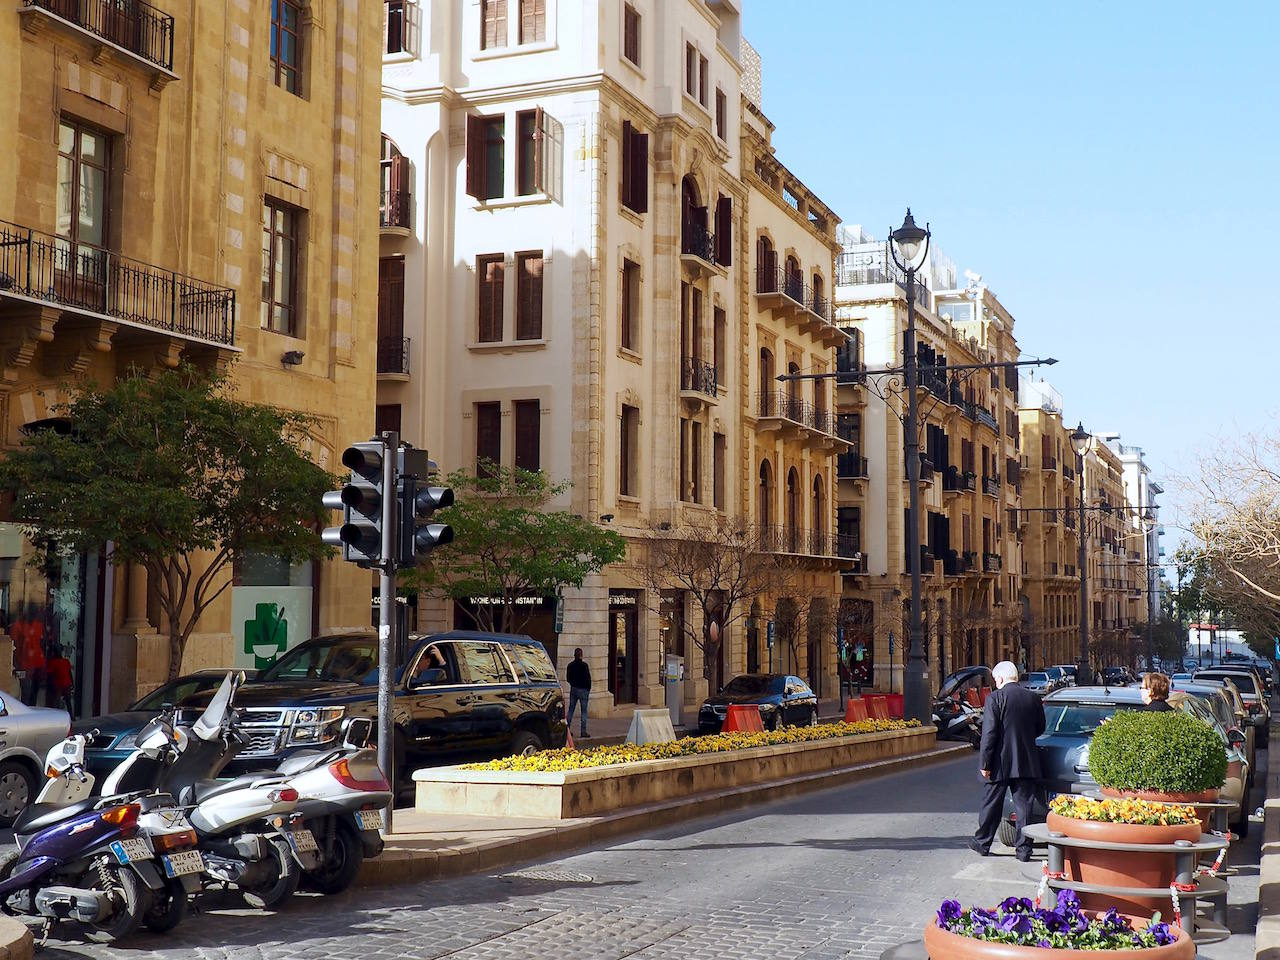 Two days in Lebanon: Beirut city centre